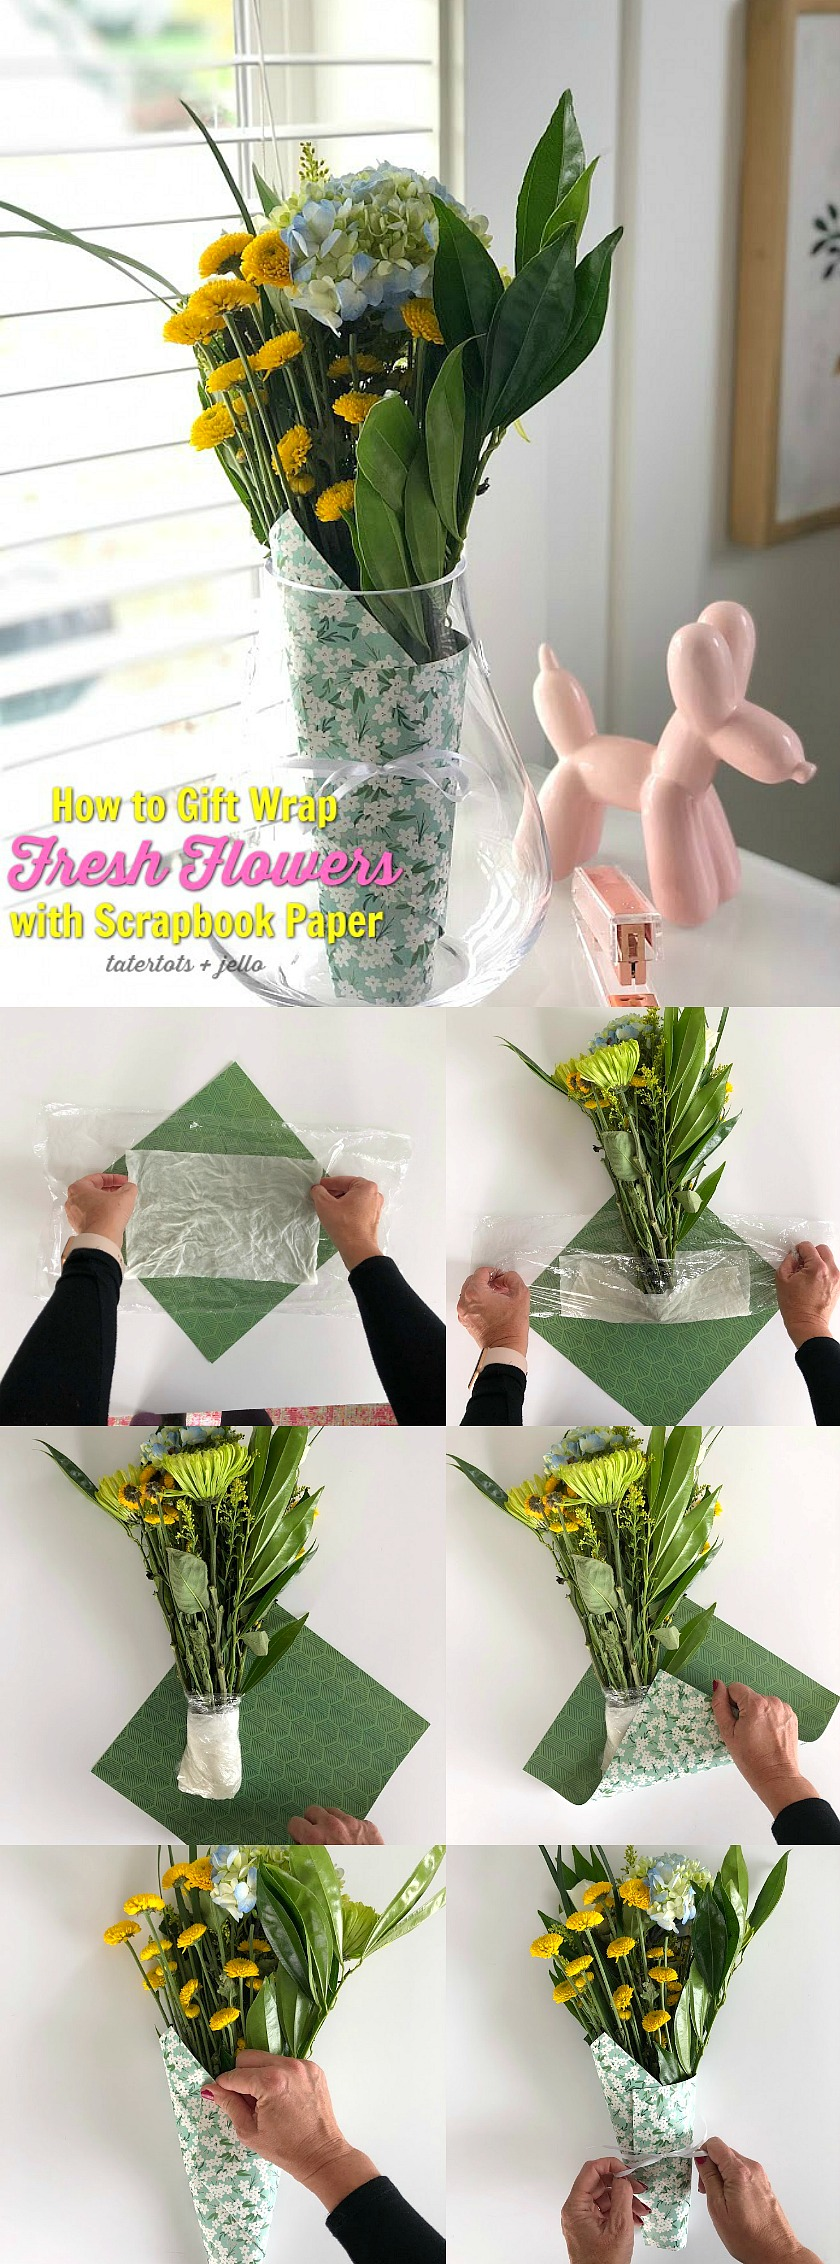 How to Gift Wrap Fresh Flowers with Scrapbook Paper! Give the gift of fresh flowers and wrap them in beautiful paper and ribbon for a gift everyone will love!